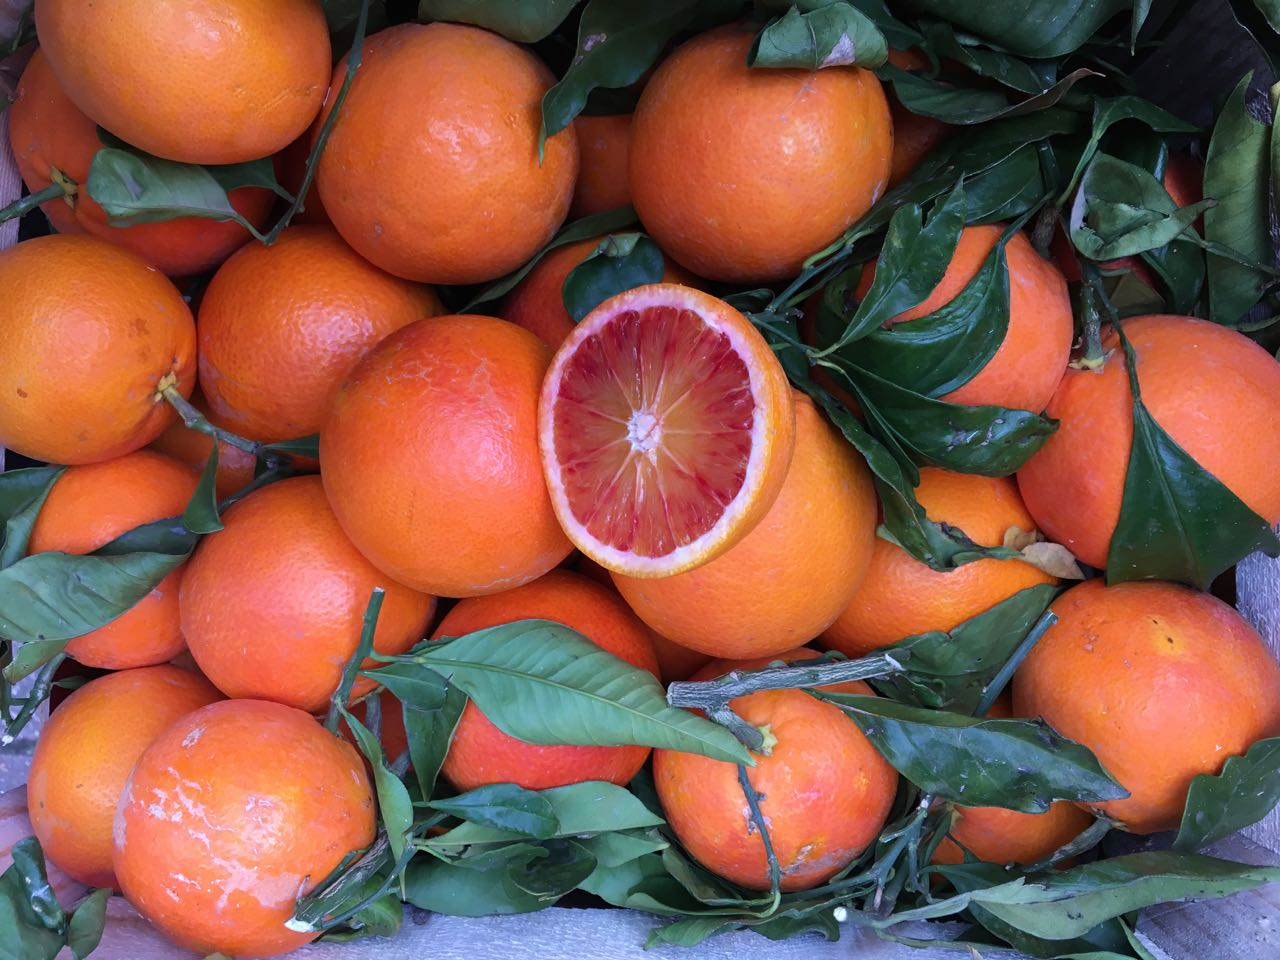 Sicilian Tarocco Oranges    Photo ©Evie Saffron Strands      Sicilian Citrus     As soon as the Sicilian Citrus season starts in December we are in contact with our growers to find out what is being harvested and when we can get them for our customers. The fruit is grown organically or with minimum intervention. There are easier ways to put citrus on our shelves but nothing compares with the taste and quality of the citrus we receive direct from Sicily.    In the citrus 'gardens' of Sicily, a sharp drop in temperature for a short period overnight results in the oranges taking on the distinctive red pigmentation. This gives a boost to Vitamin C and the Antithynins which make Sicilian Blood Oranges so special. The darker the flesh, the higher these levels are. Citrus harvesting starts at the end of November and can, in a year of normal weather, go on through the varieties until June. It's the oranges that grow best in Sicily and they get the most attention, thanks to their uplifting colour palette and versatility. Citrus varieties crossbreed readily, which is why new varieties of citrus come to market from time to time. From Sicily the important varieties of orange are Moro, Tarocco, Sanguinello and the sweet Navelina. Of the bloods, the Moro develops the reddest flesh and its juice is almost raspberry-flavoured. The Tarocco is a little sweeter and its skin and flesh more variably-coloured. Our arch is aglow when the Tarocco Fire variety arrives thanks to its fiery orange/red streaked skin. The Sanguinello appears later in the season. Its thin peel make it a more delicate traveller so we tend not to get this variety. The sweet Navelina is less special but still good. And we're always happy to receive Pink Grapefruits from our growers as it's so difficult to find unwaxed grapefruits. As weather conditions change, lemons are now growing more happily on the island and, if we can get them, we take them. Tiny Kumquats and huge Cedro will be arriving too.    While much citr